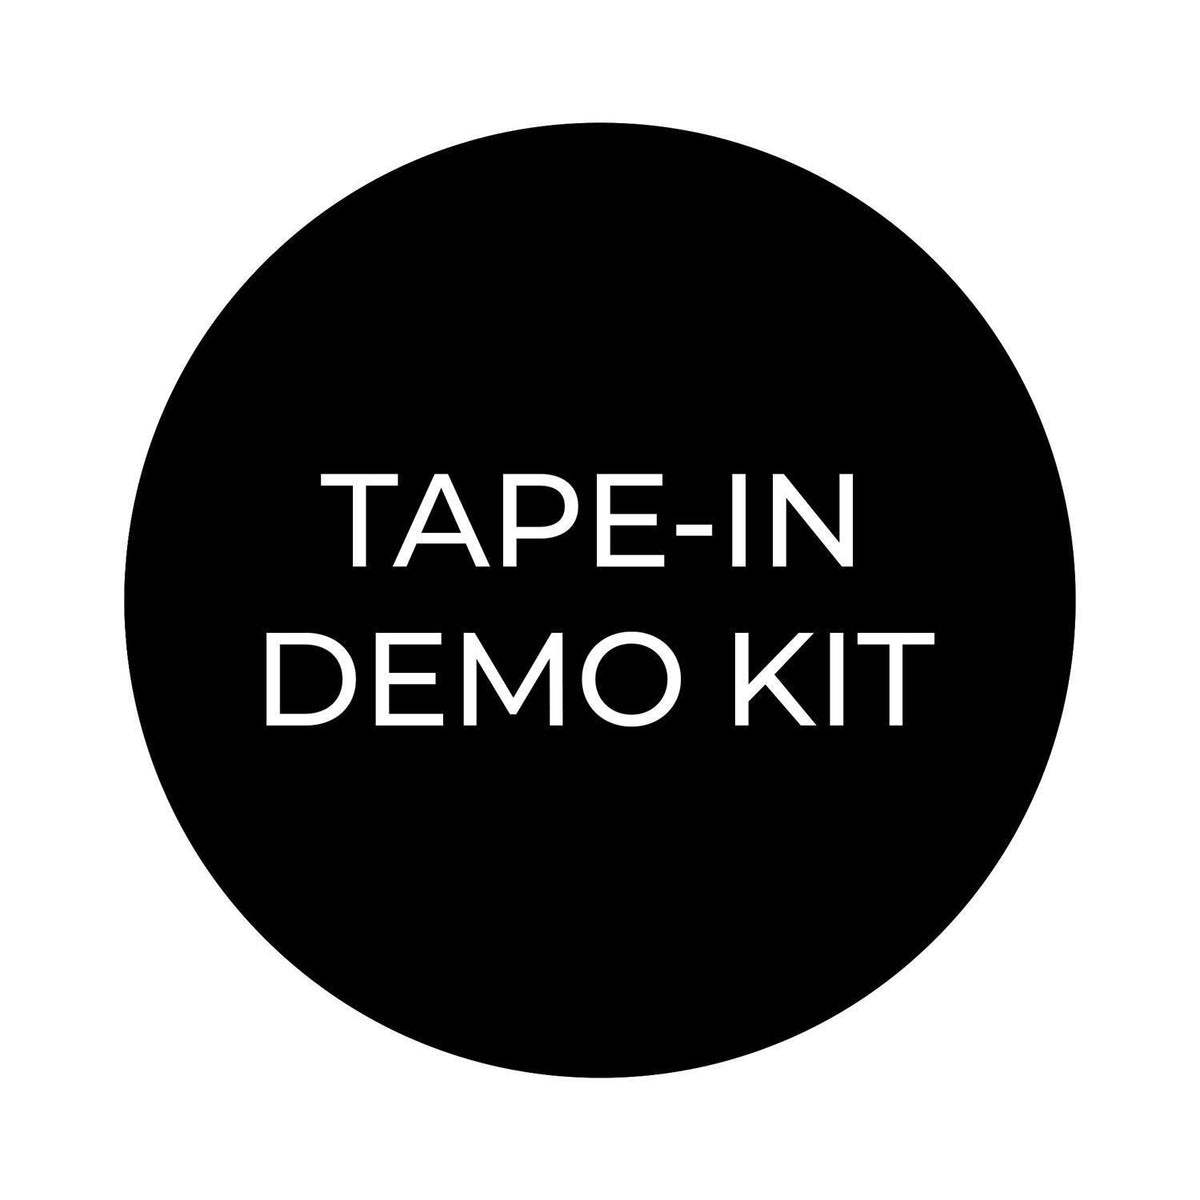 FREE Tape-In Demo Kit